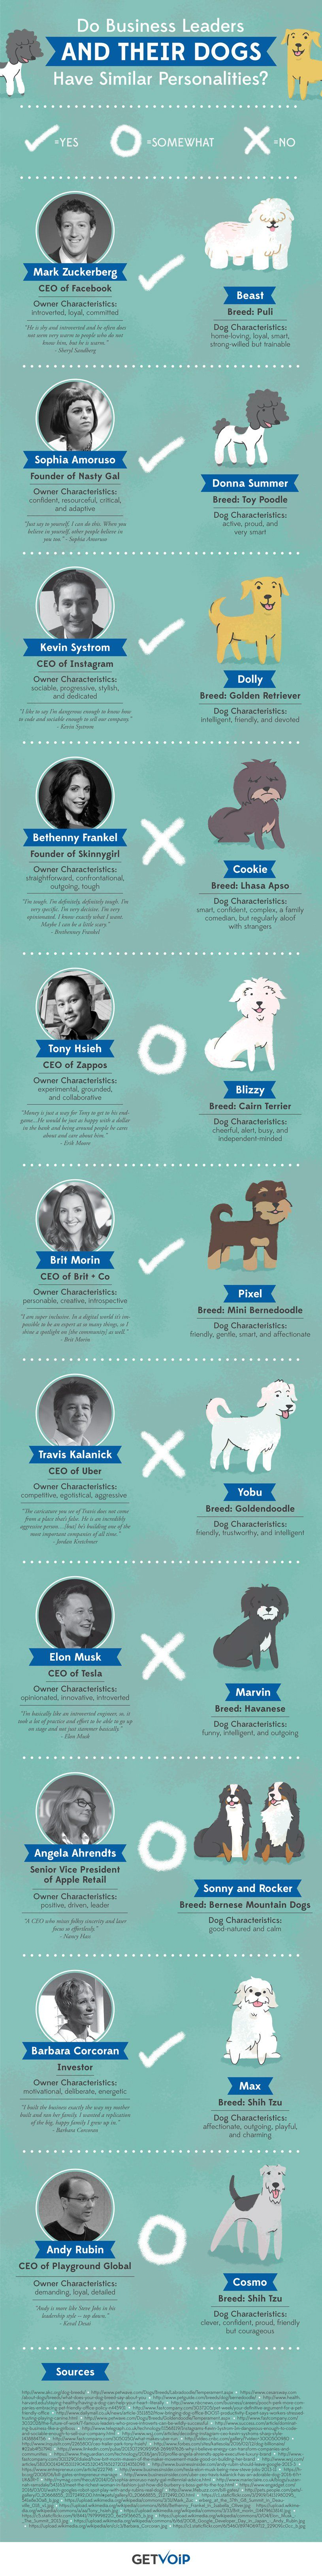 Do Business Leaders and Their Dogs Have Similar Personalities?